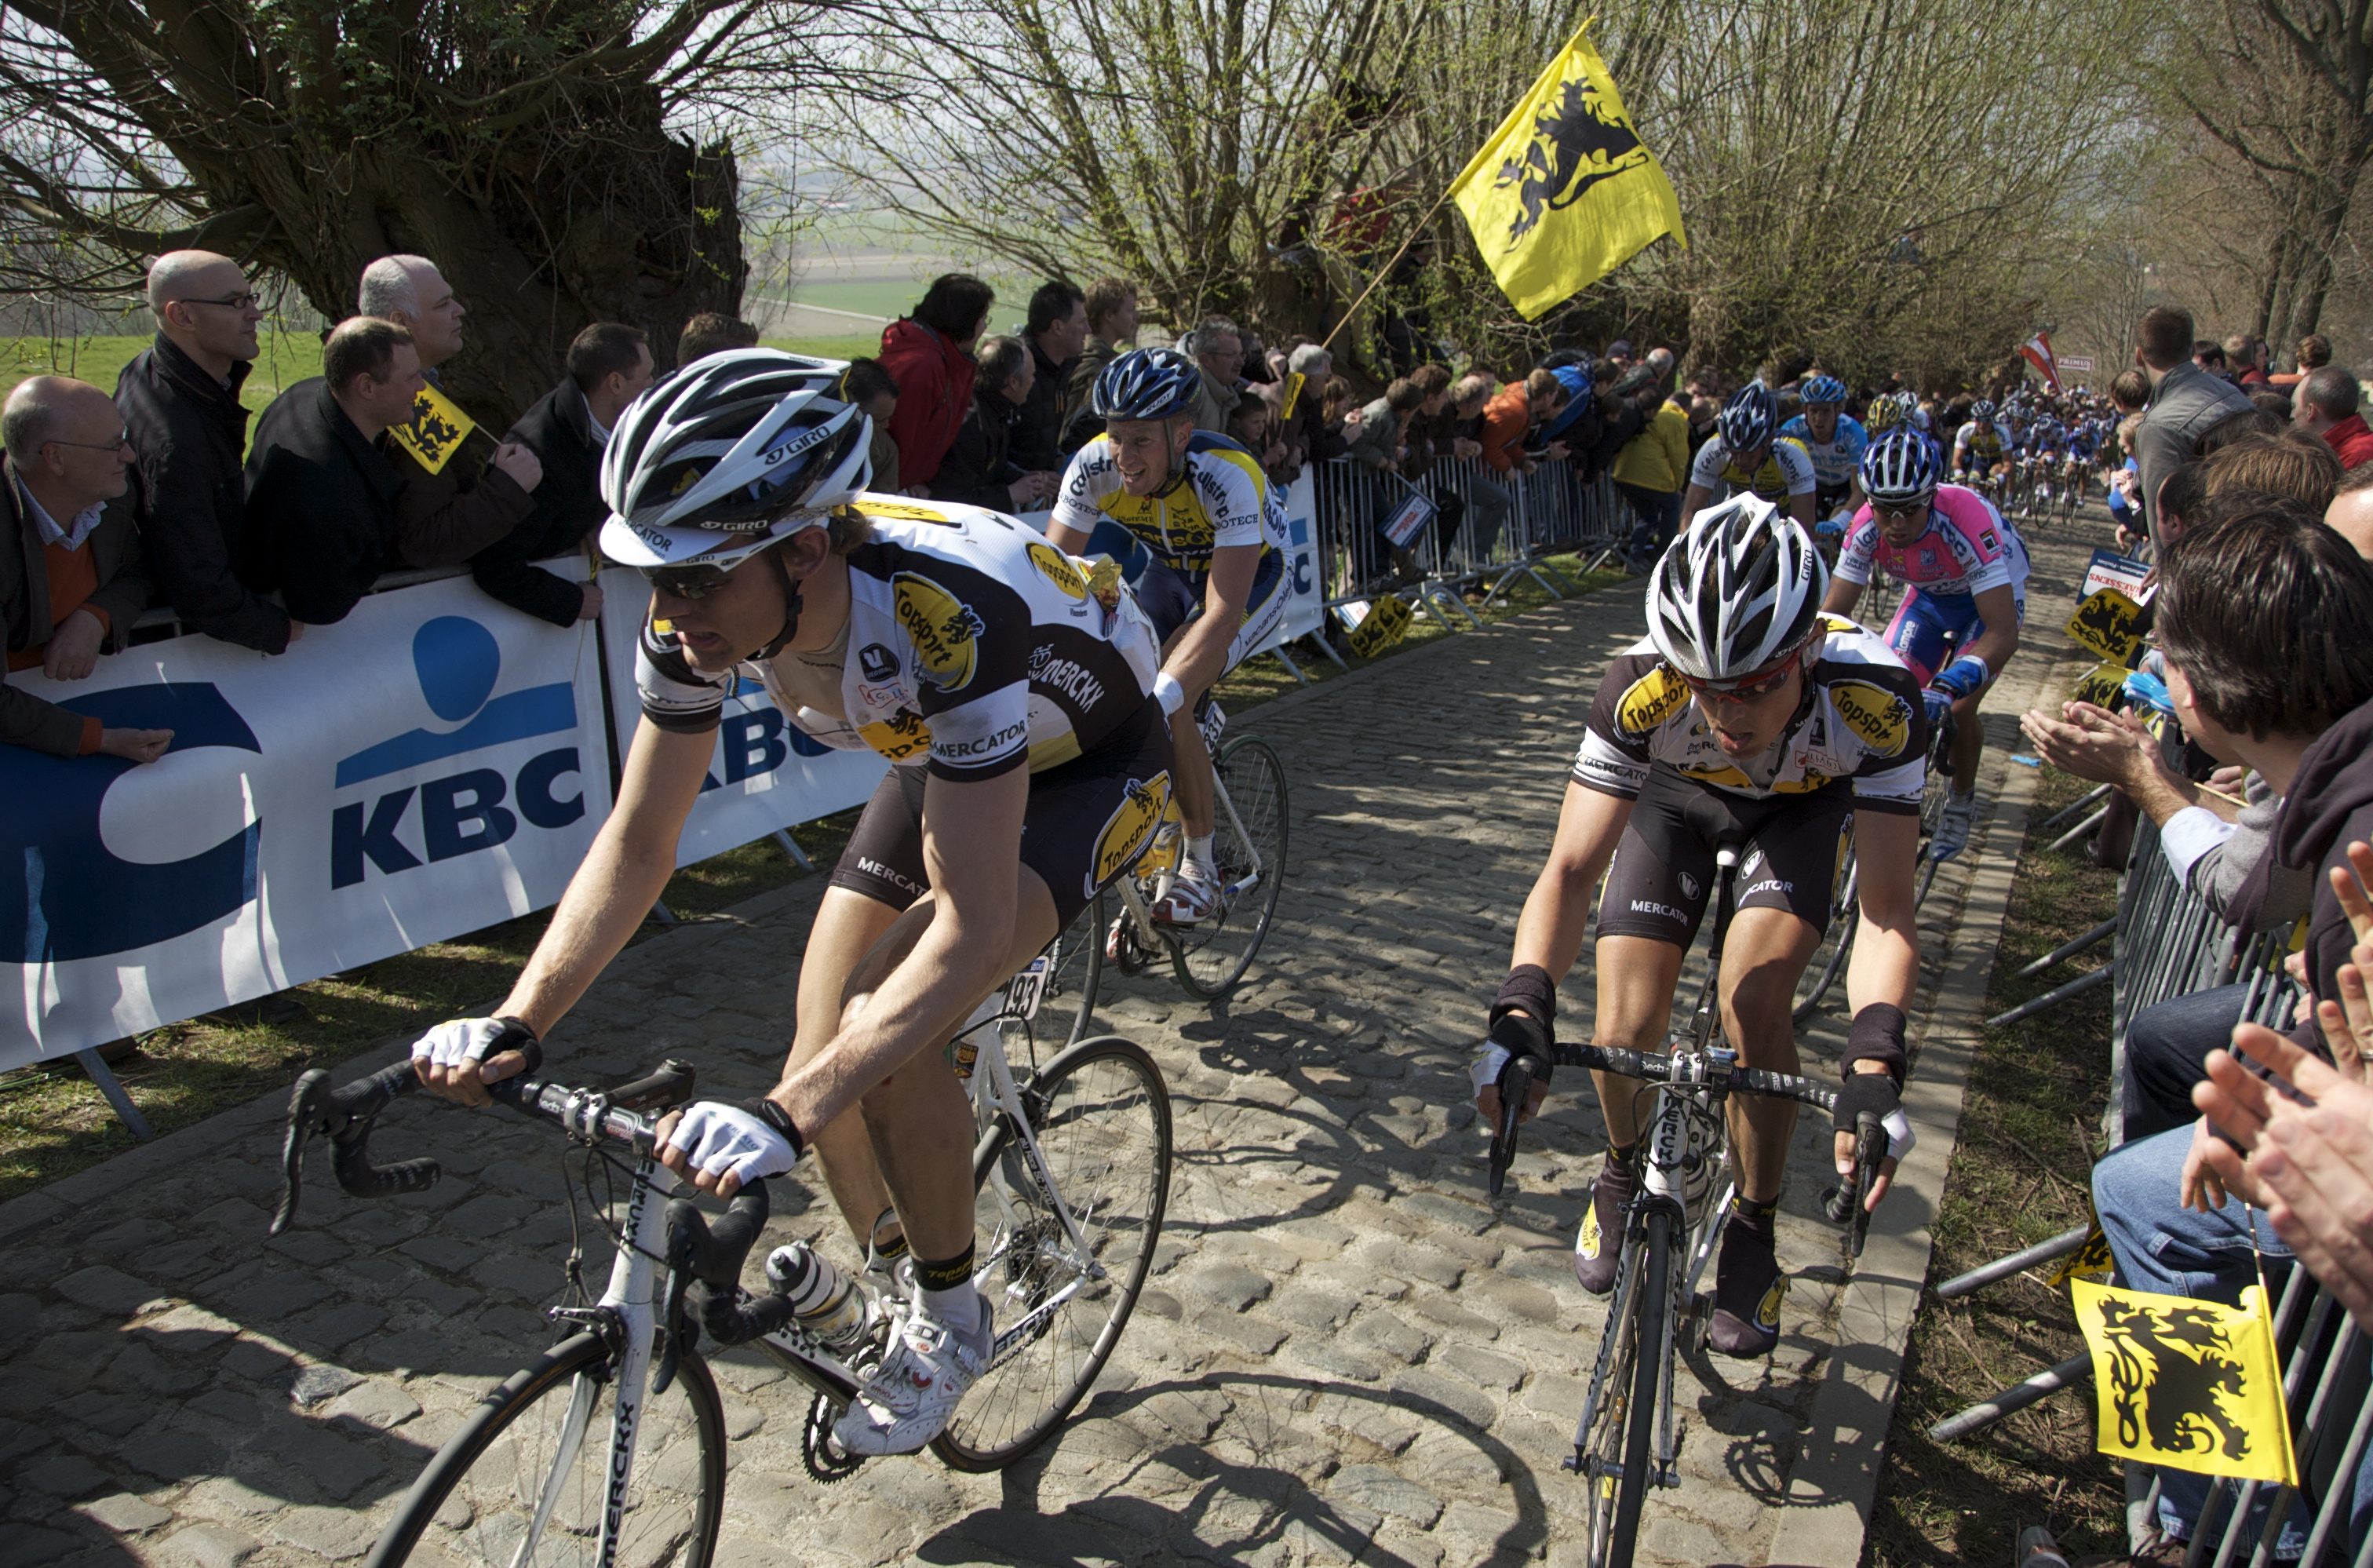 Koppenberg hill during the 2009 Ronde van Vlaa...